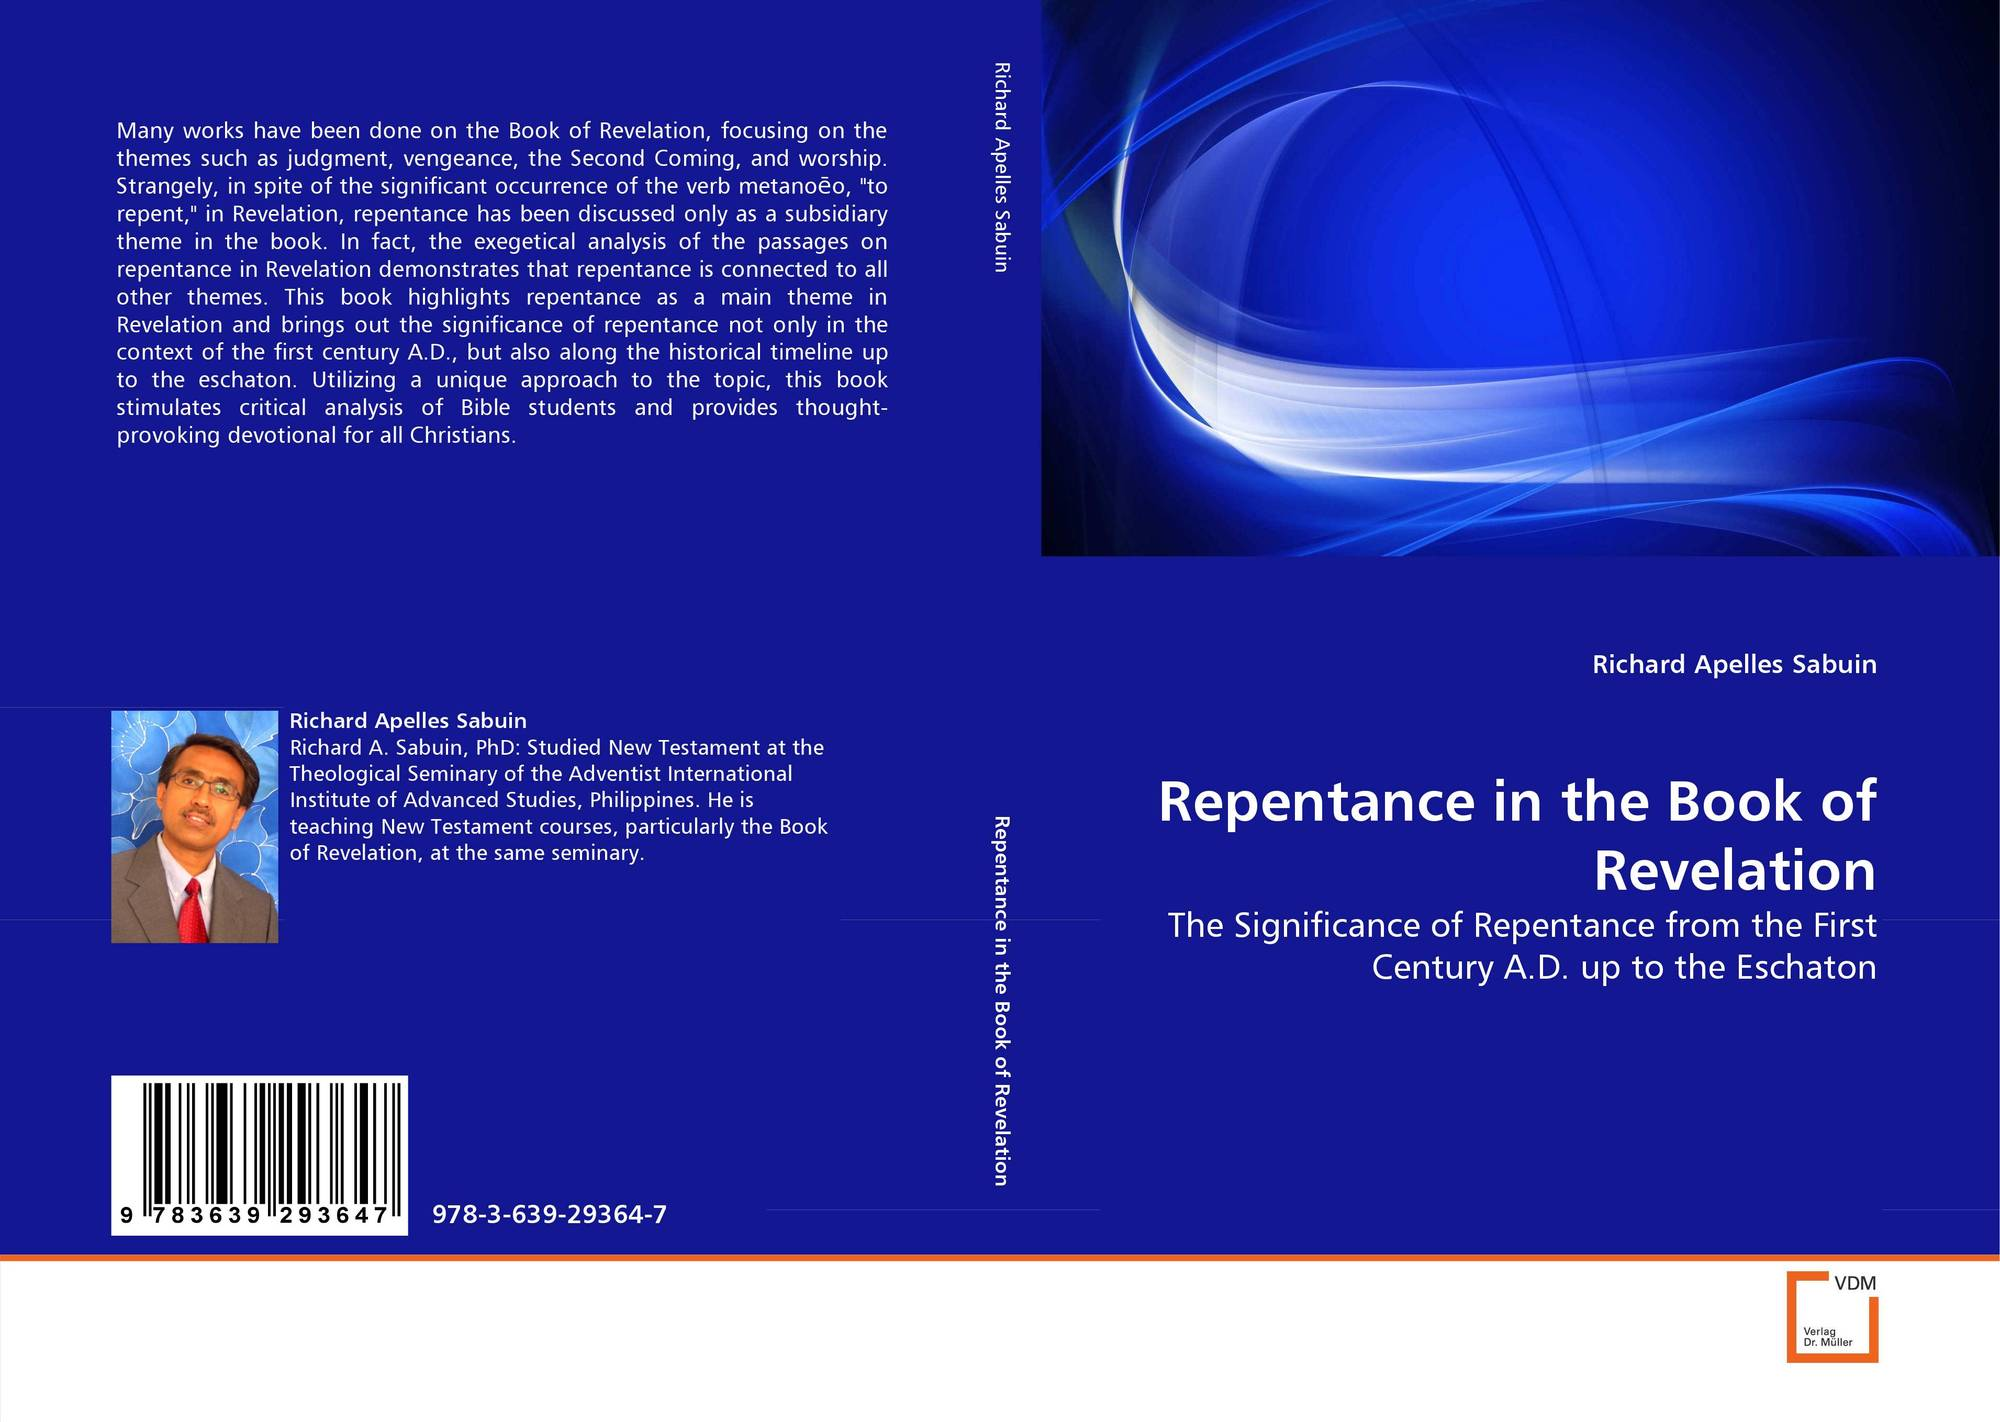 Repentance in the Book of Revelation, 978-3-639-29364-7